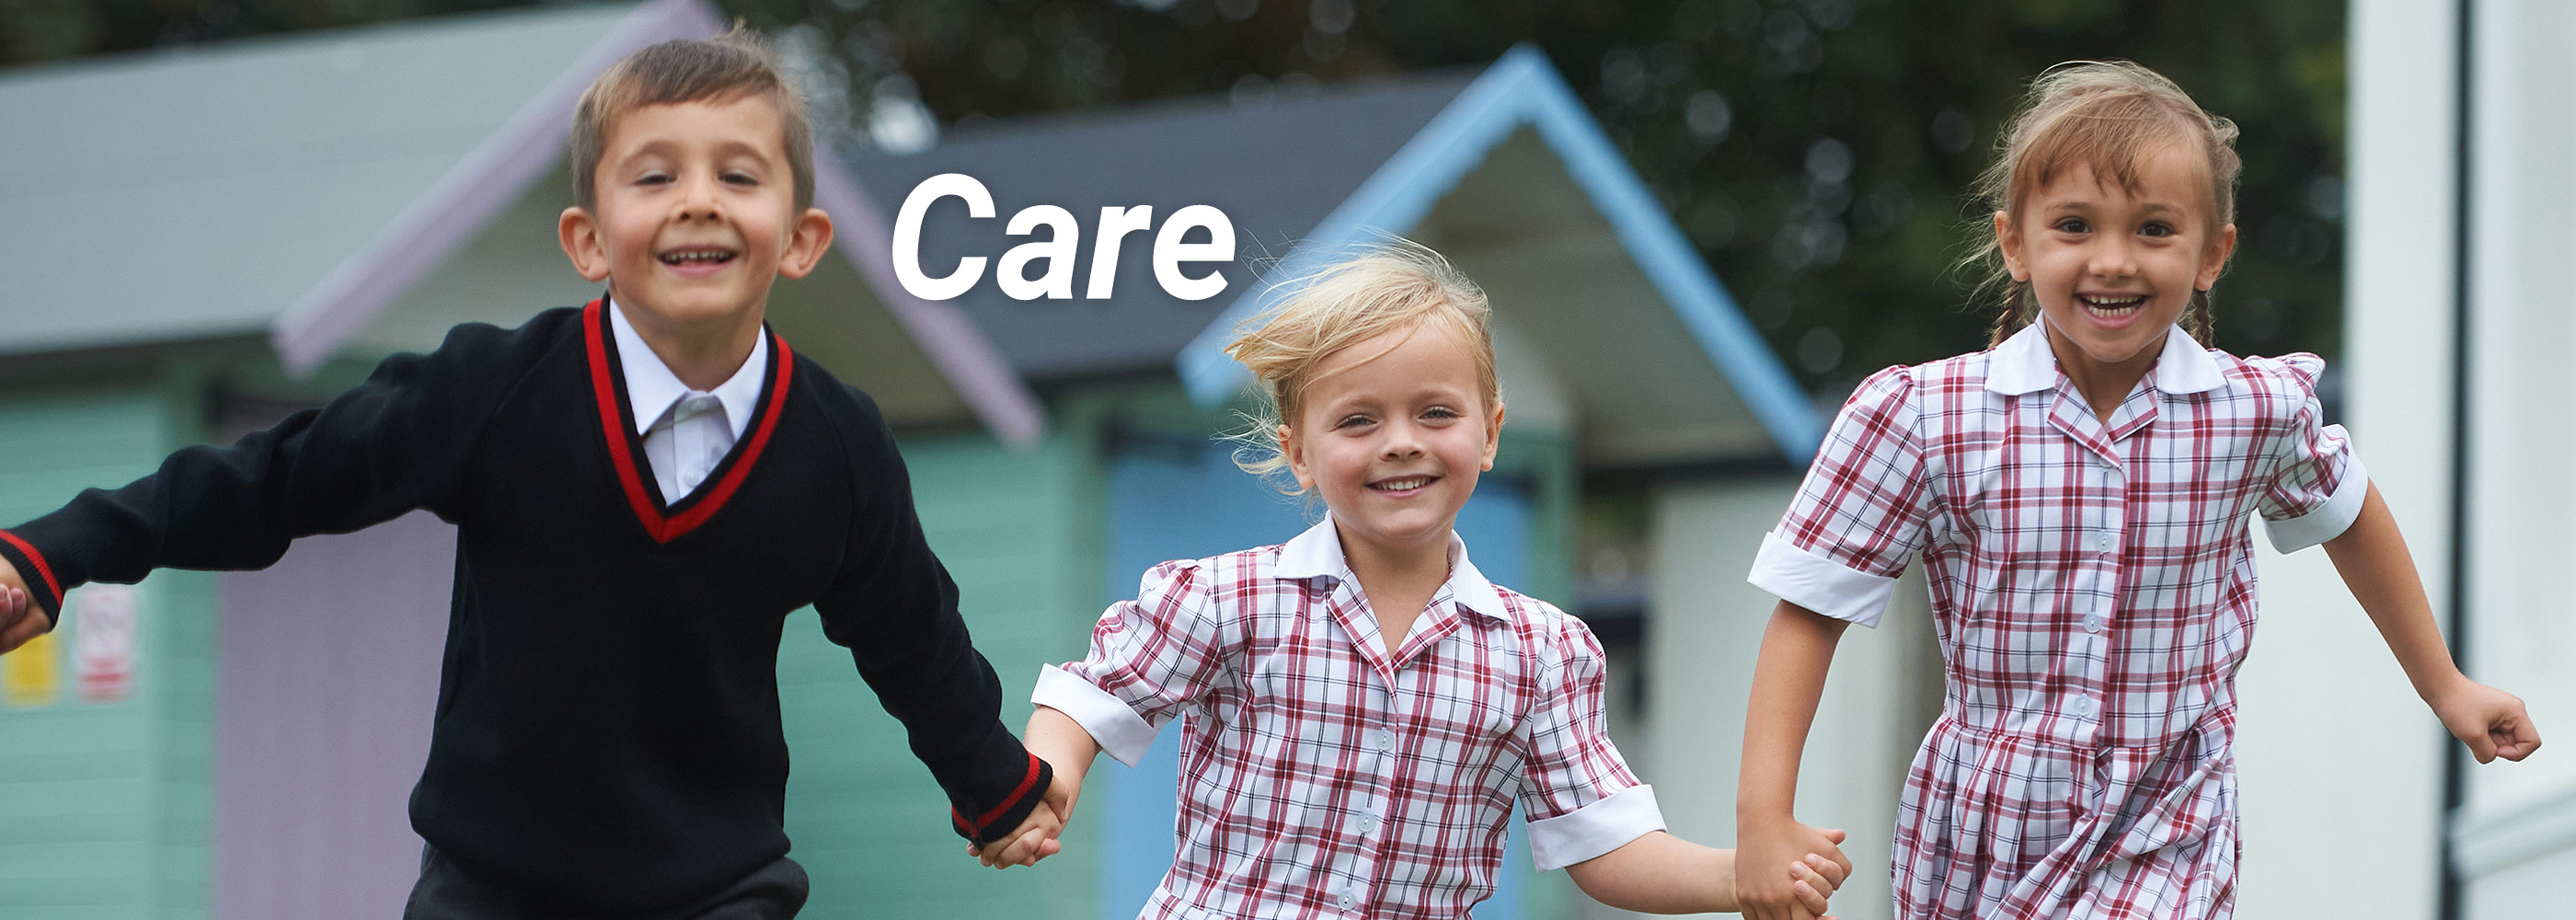 Care (text in image)